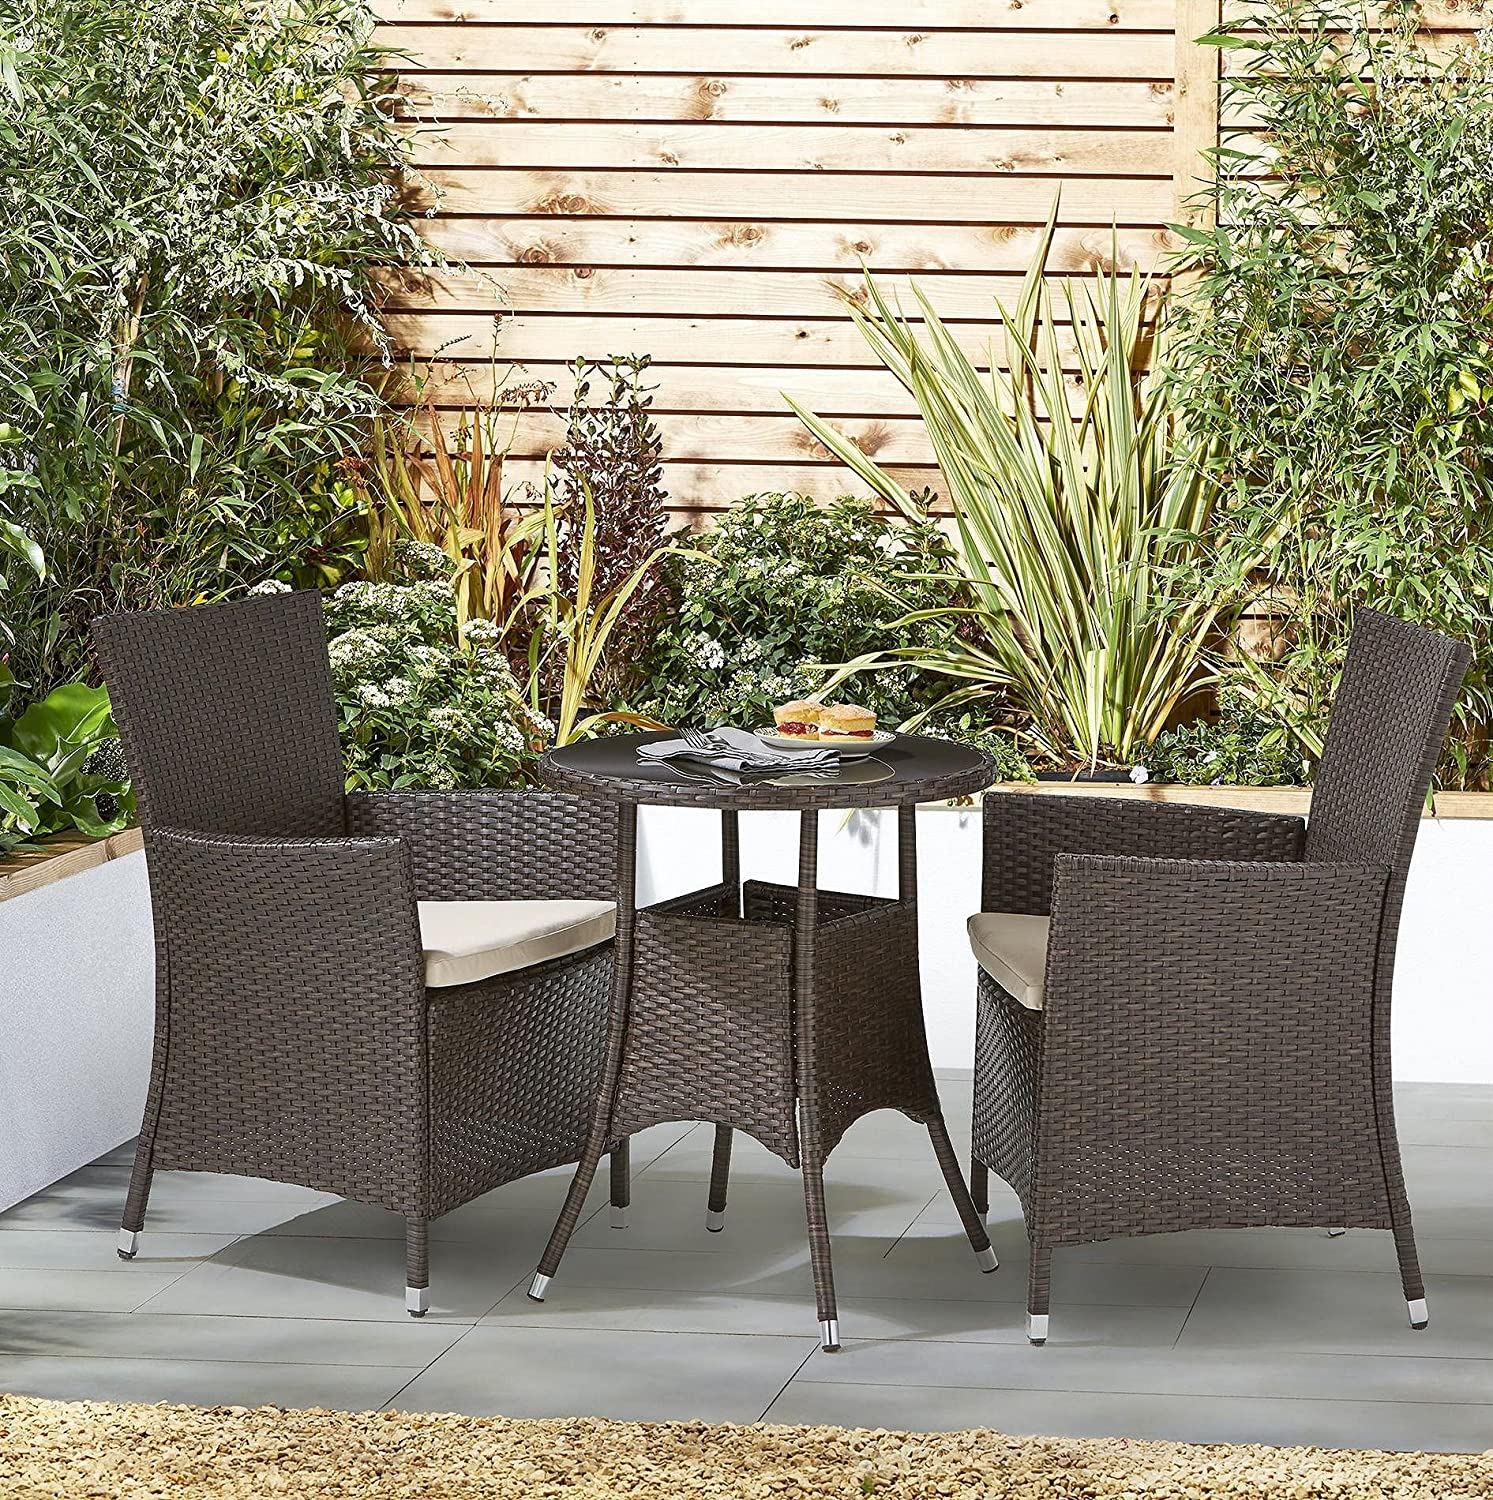 Tesco NEW Corsica Rattan 11 Piece Bistro Garden Dining Table & 11